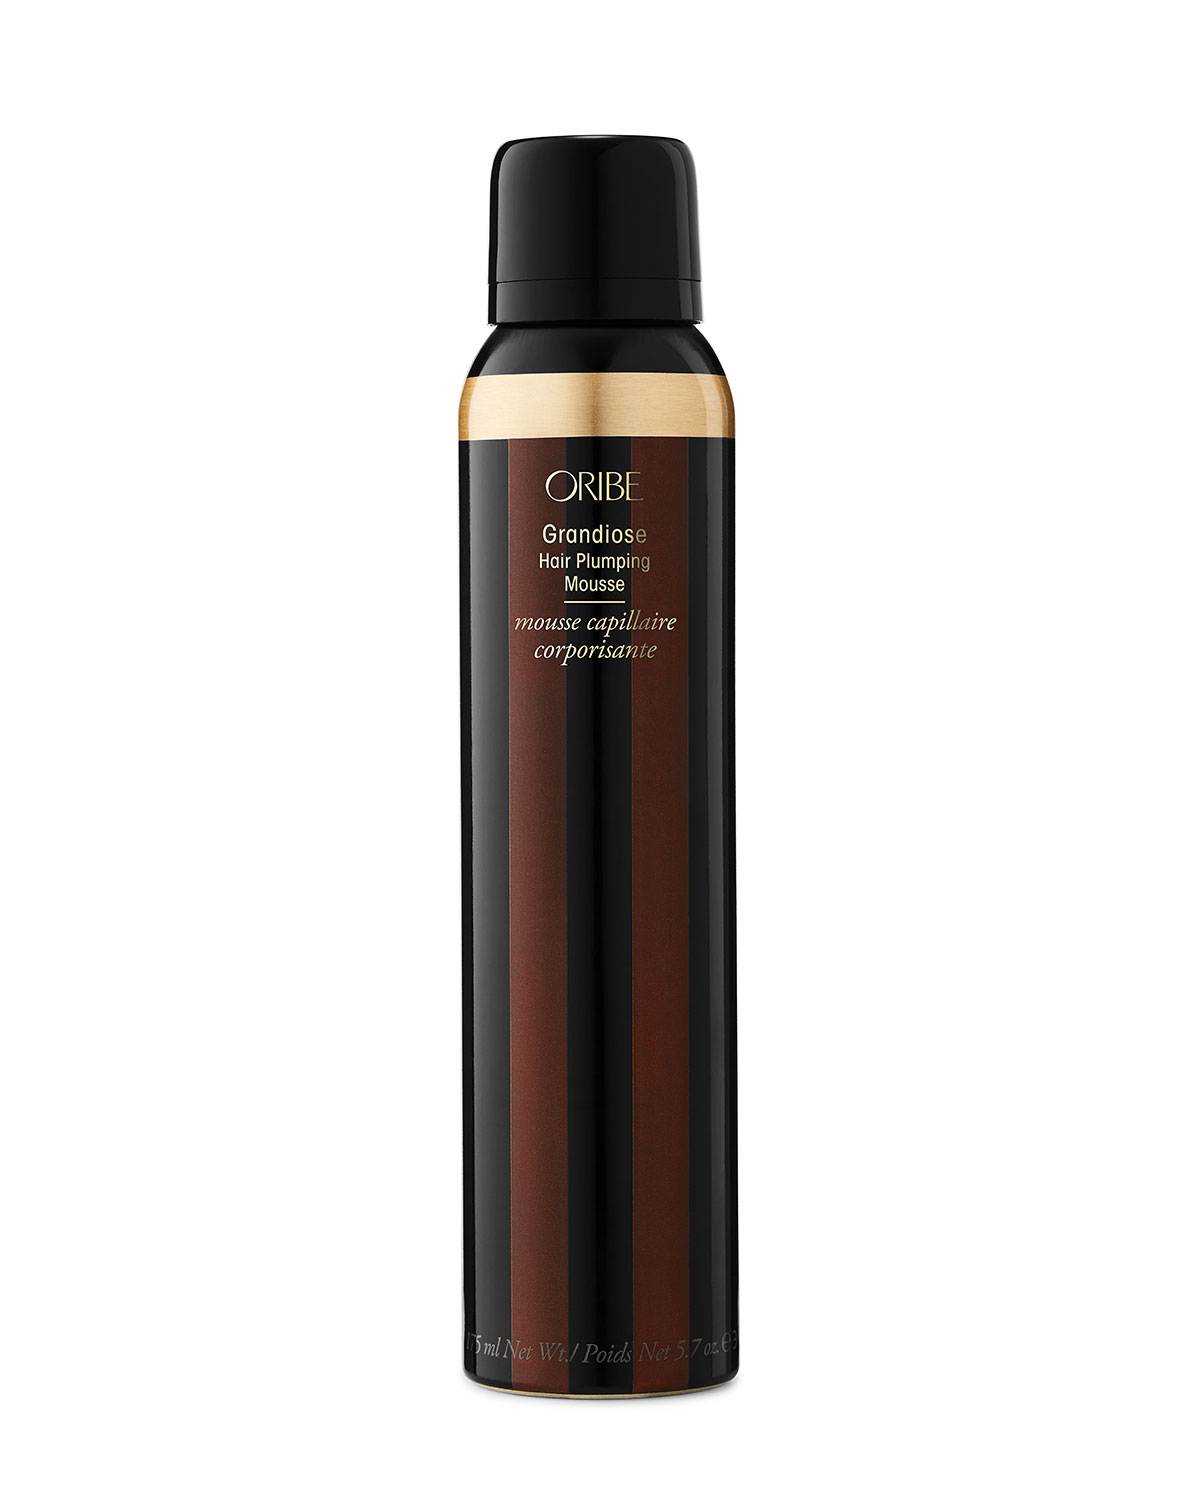 Oribe 5.7 oz. Grandiose Hair Plumping Mousse